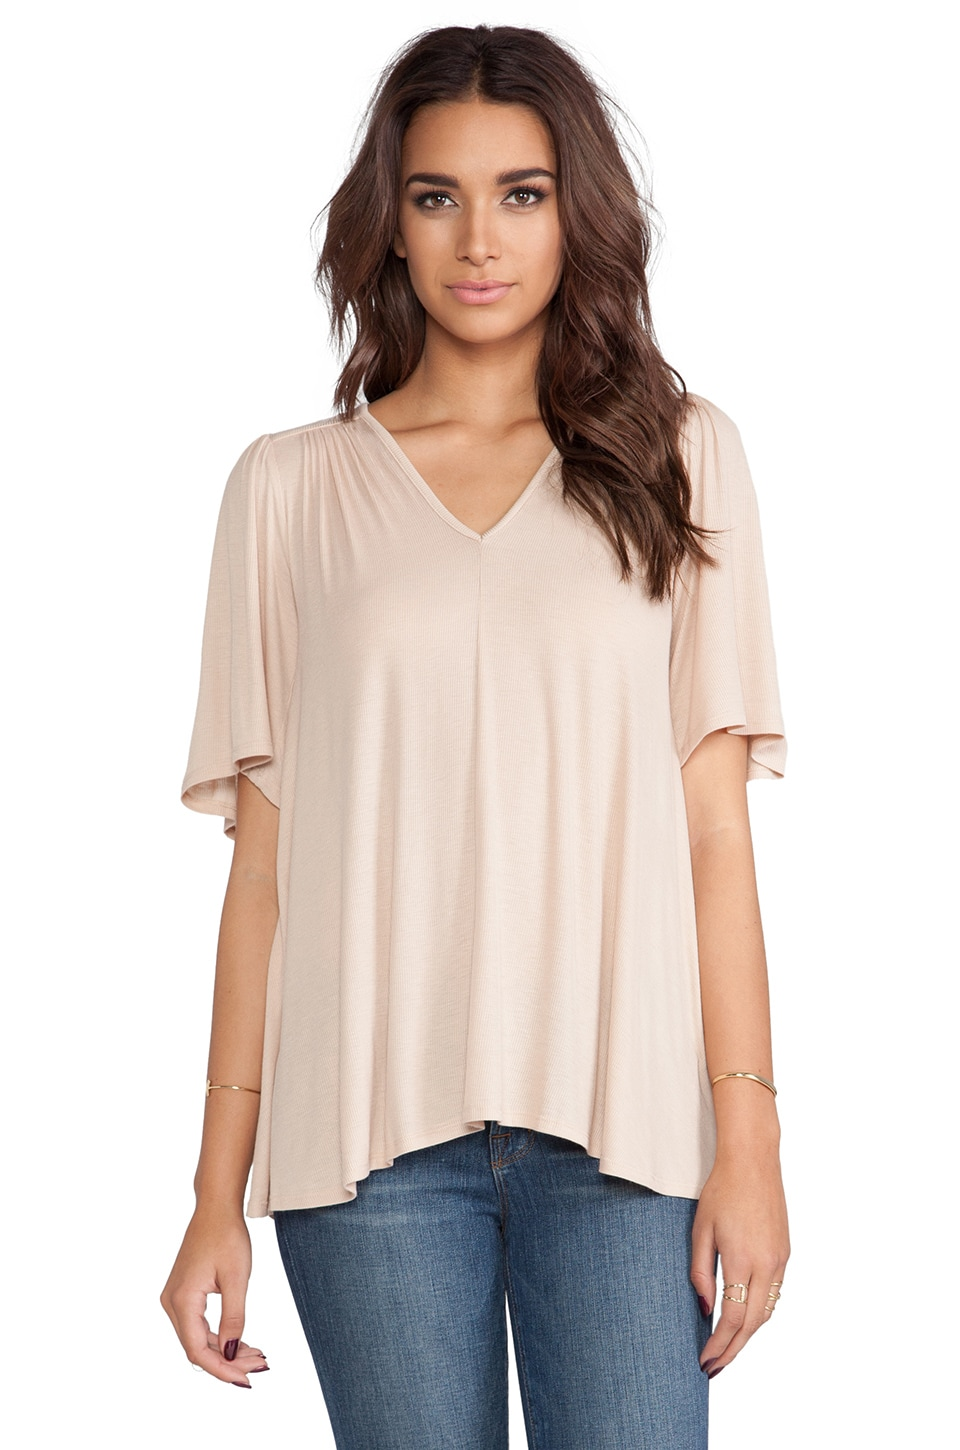 Rachel Pally Rib Highway Top in Bamboo